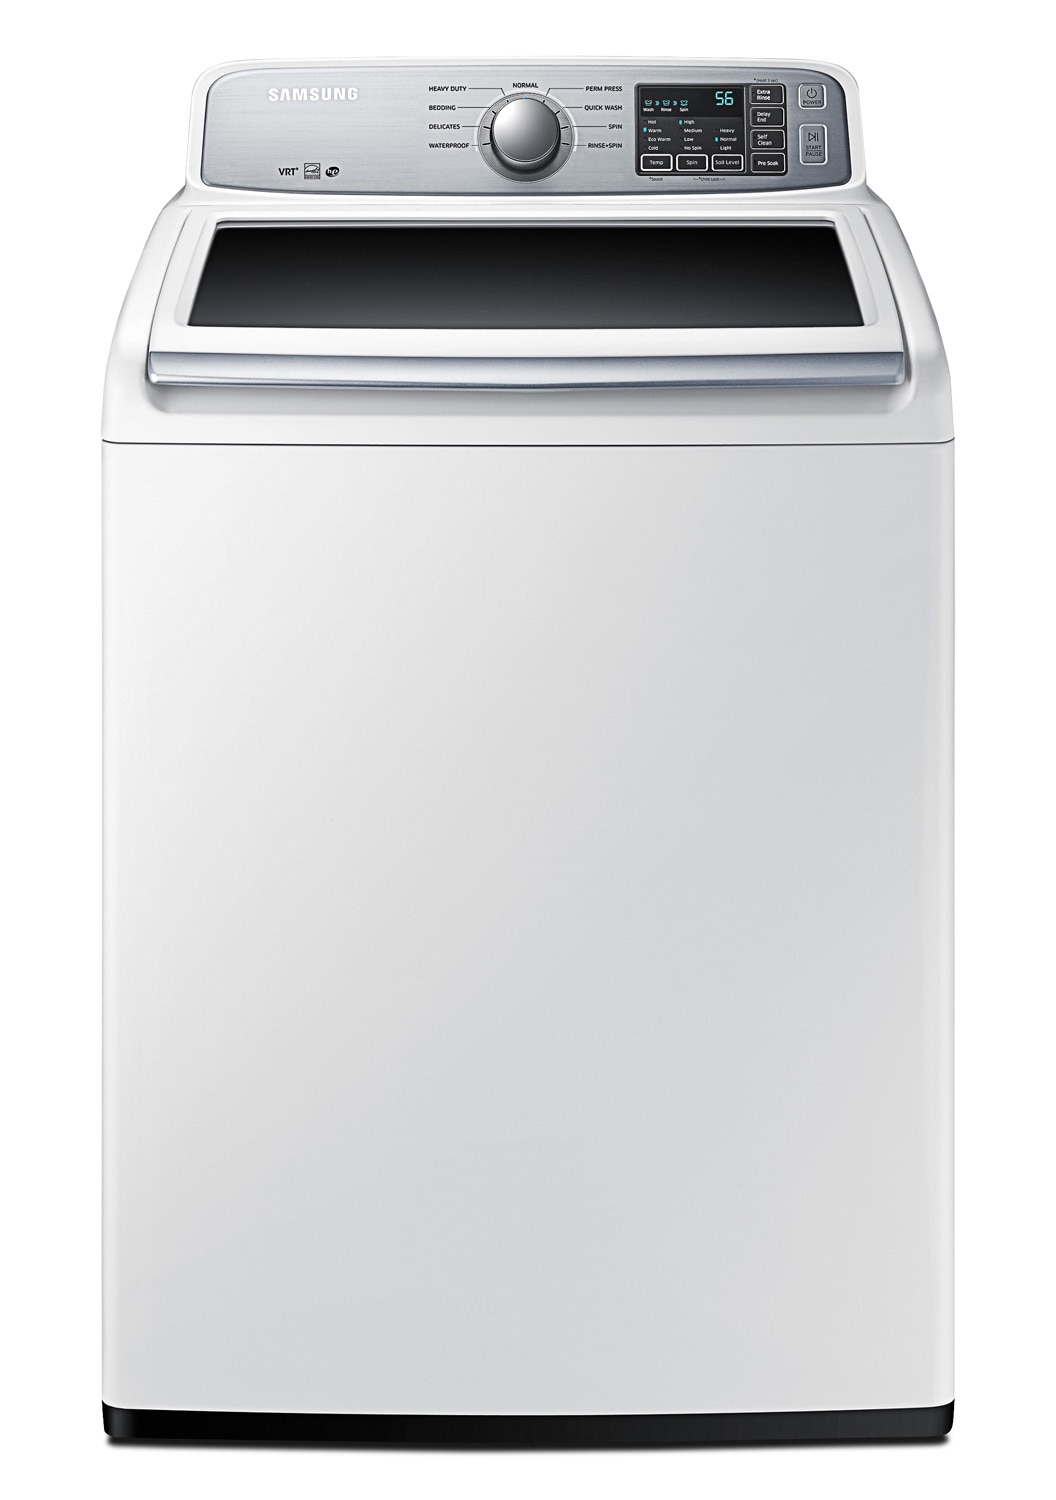 Topload Washer Samsung White Top Load Washer 52 Cu Ft Iec Wa45h7000aw Leons